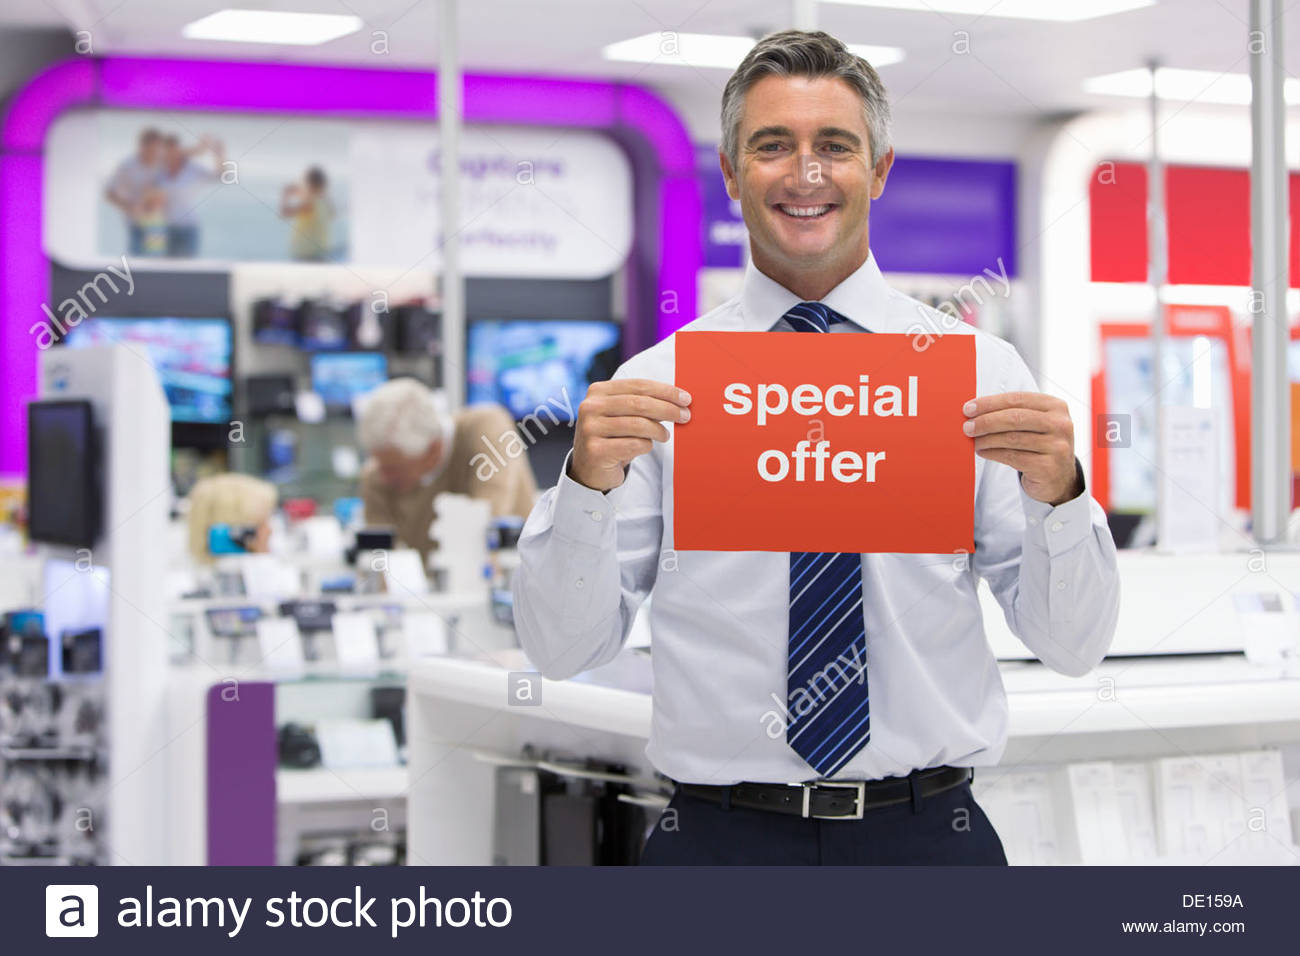 Portrait of smiling salesman holding Special Offer sign in electronics store - Stock Image